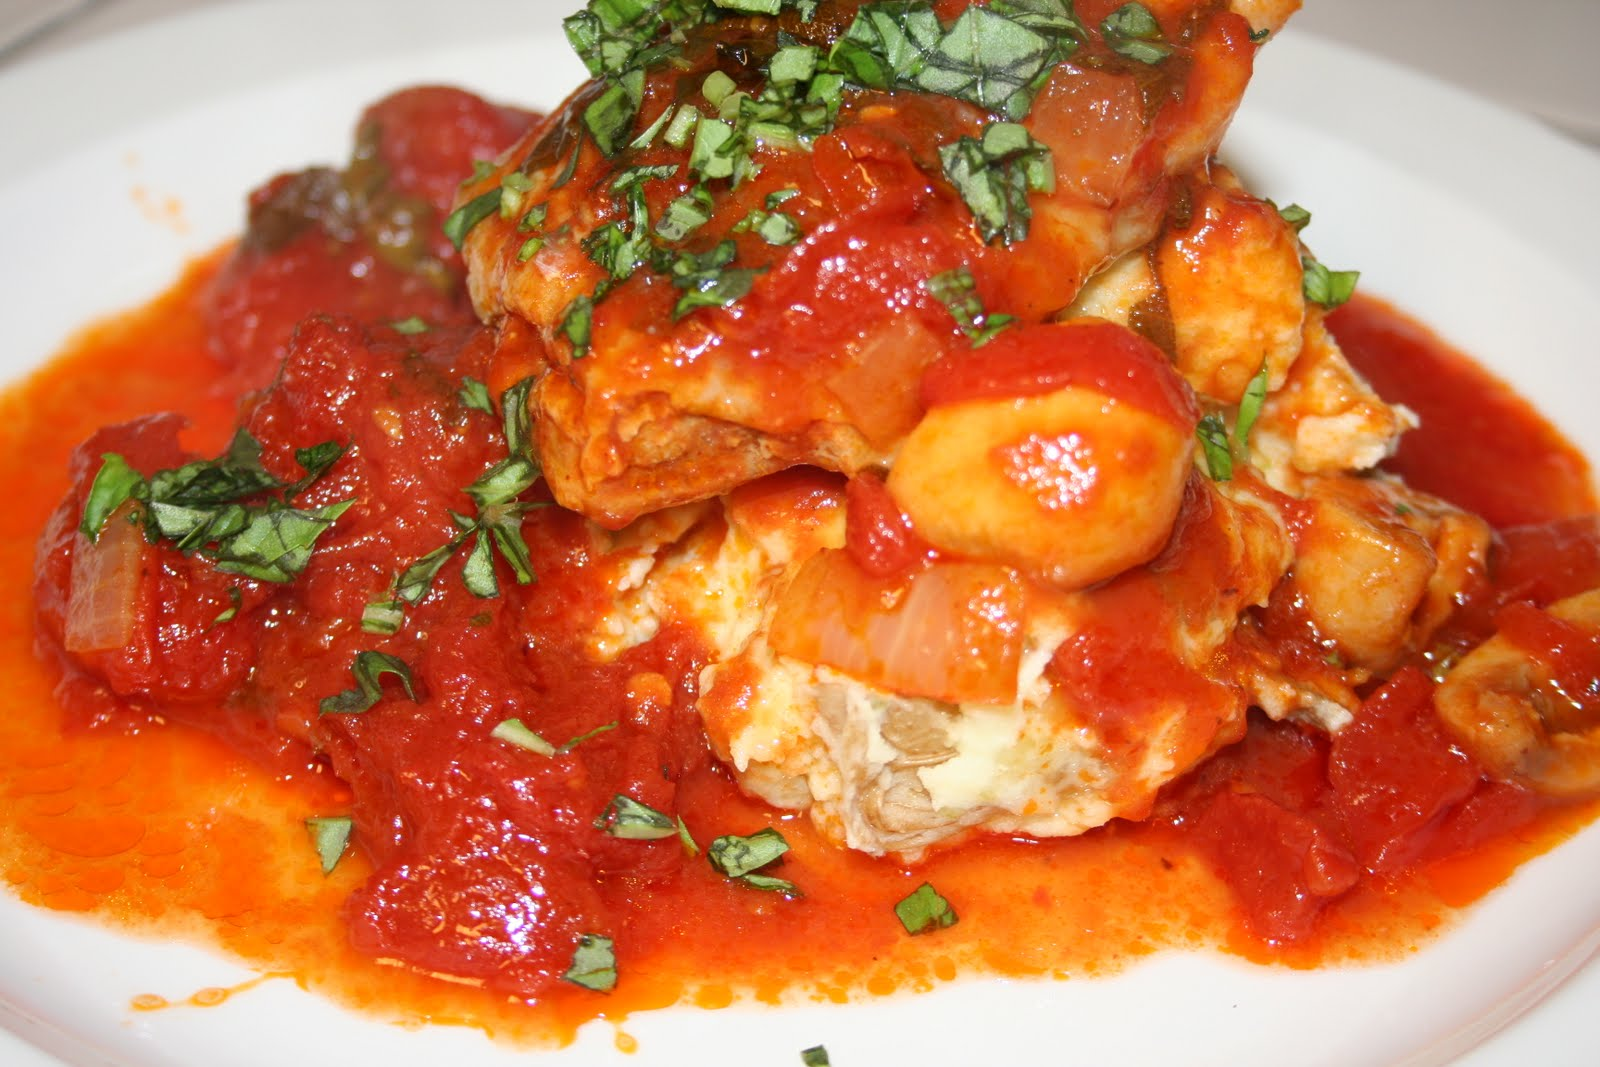 All Things Mimi: Braised Chicken with Tomatoes and Garlic